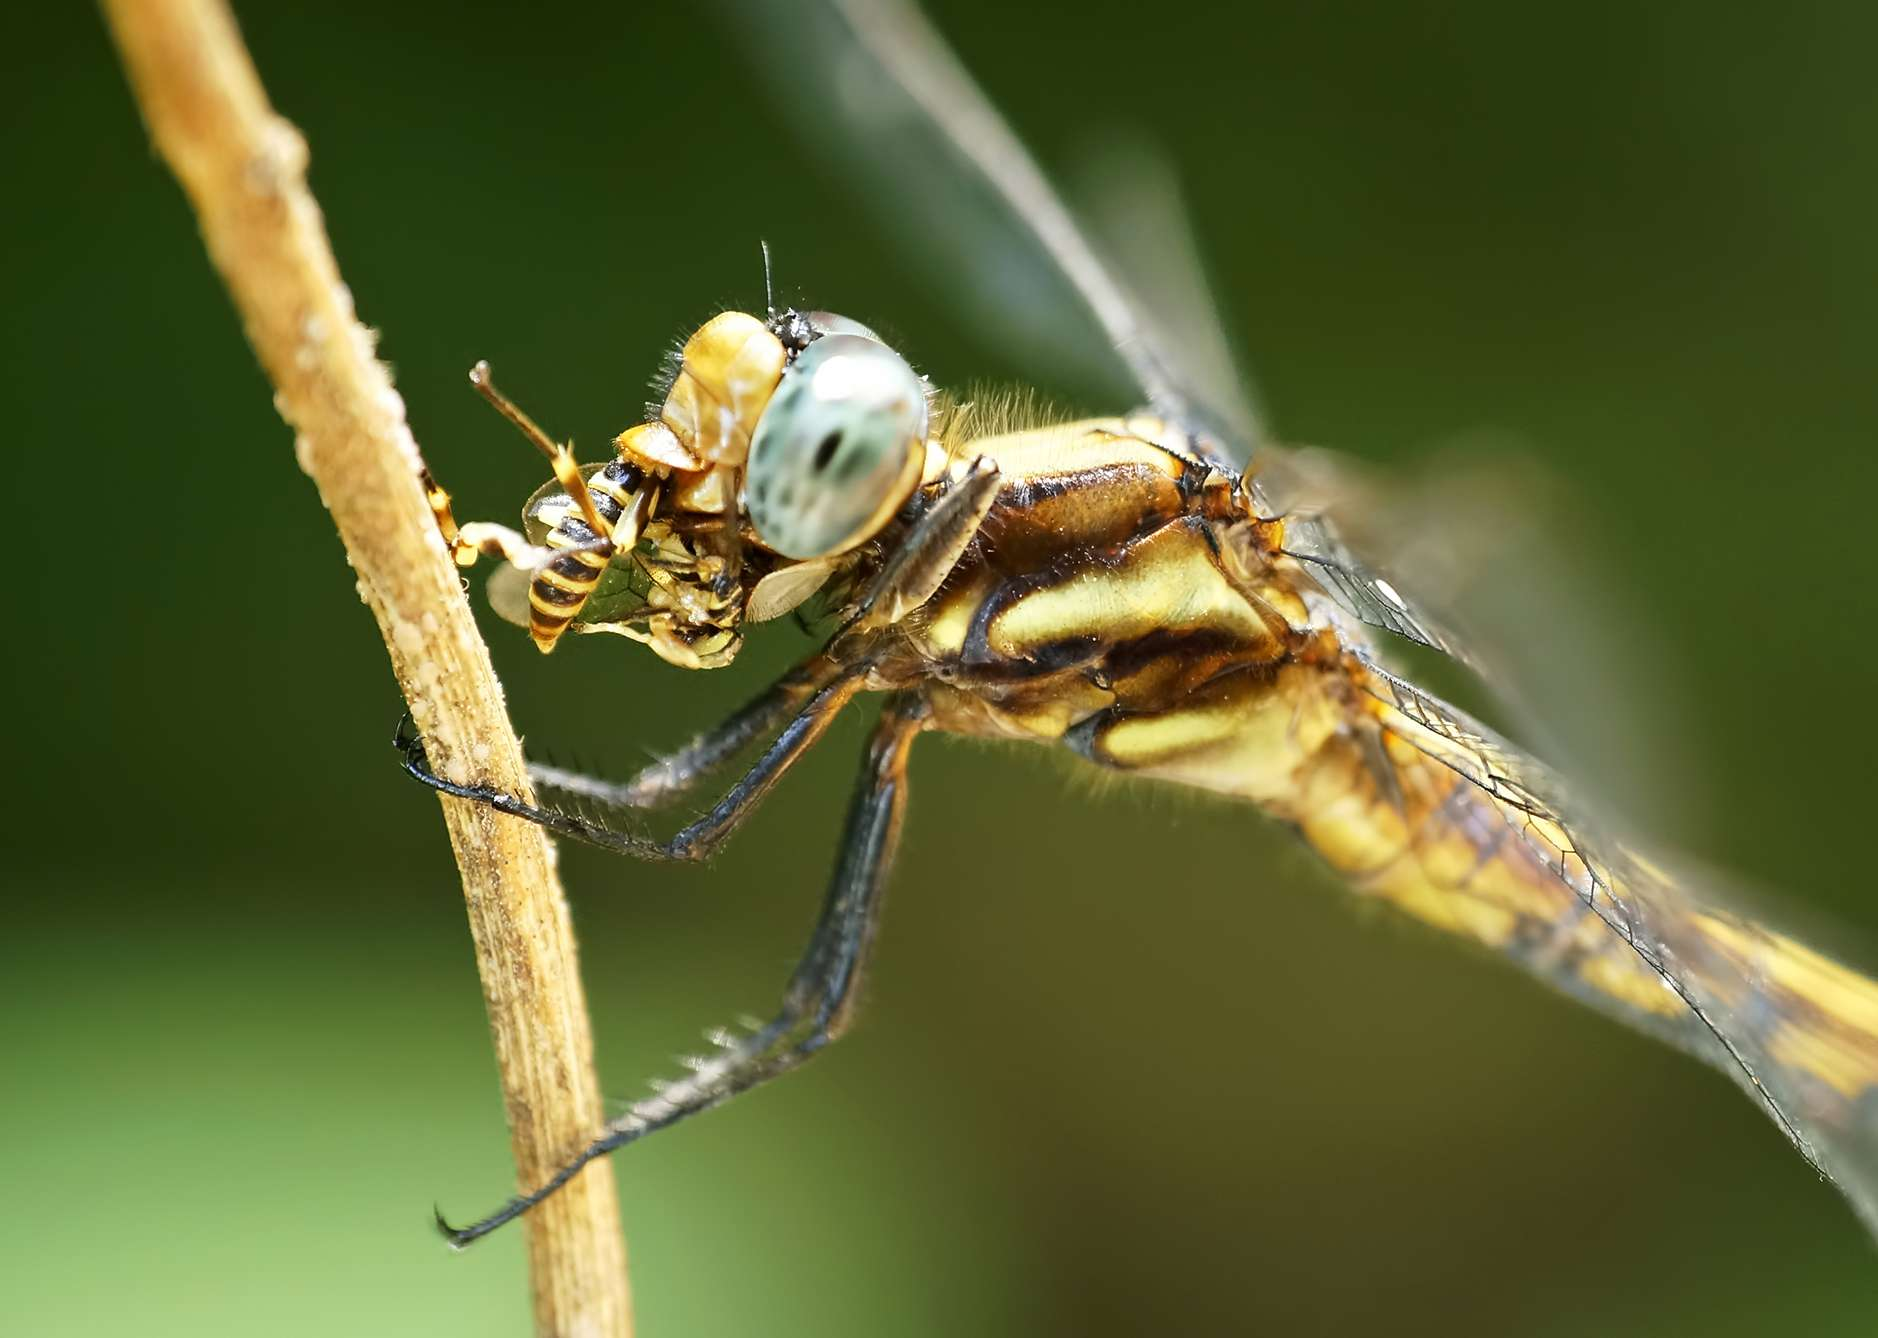 A dragonfly feasts on a small insect.